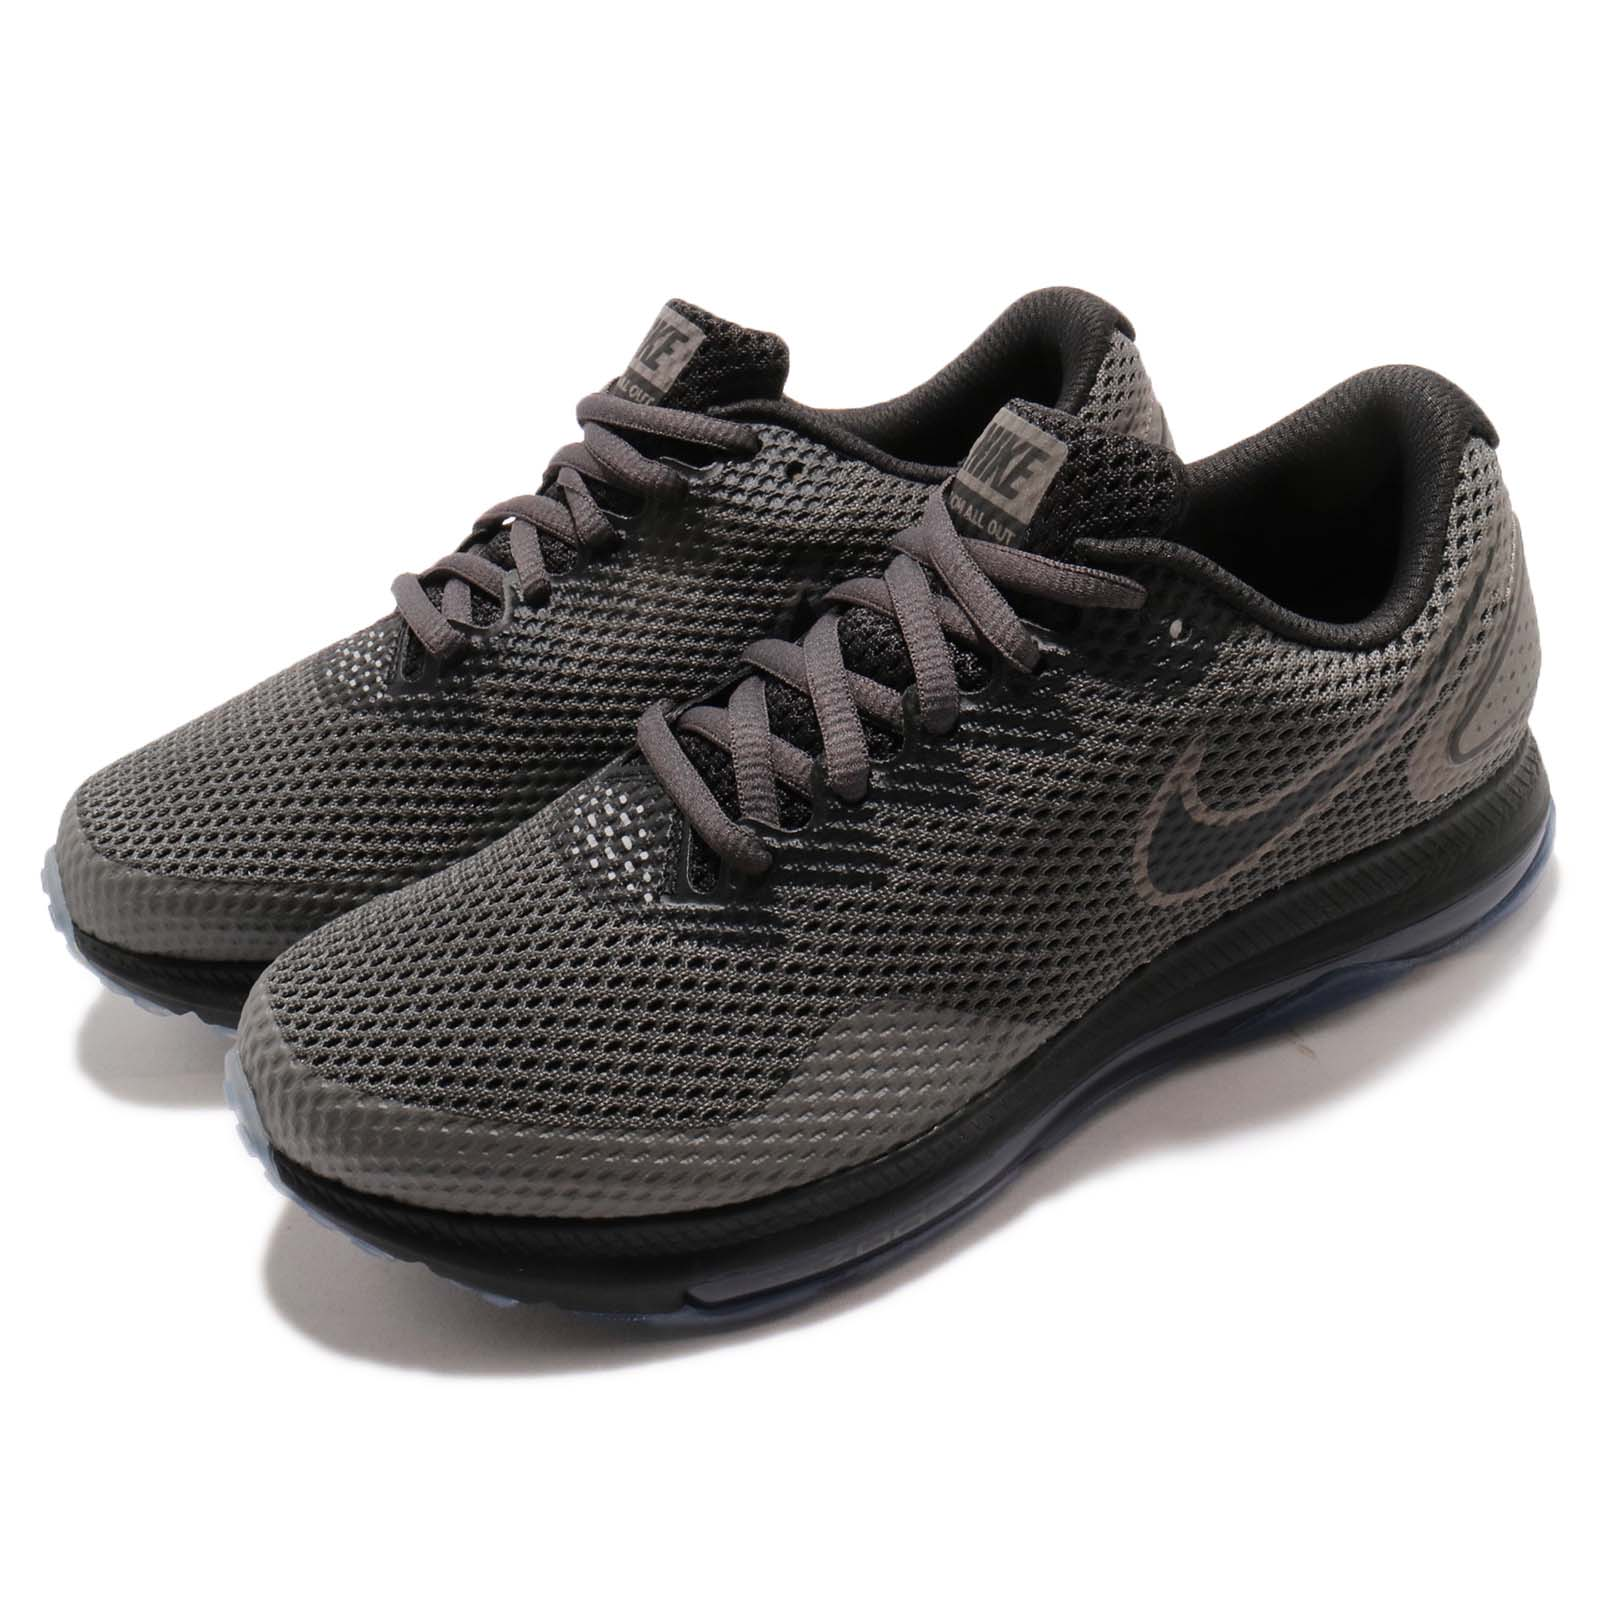 1b9be7fcaaf Details about Nike Wmns Zoom All Out Low 2 Grey Black Air Max Women Running  Shoes AJ0036-002